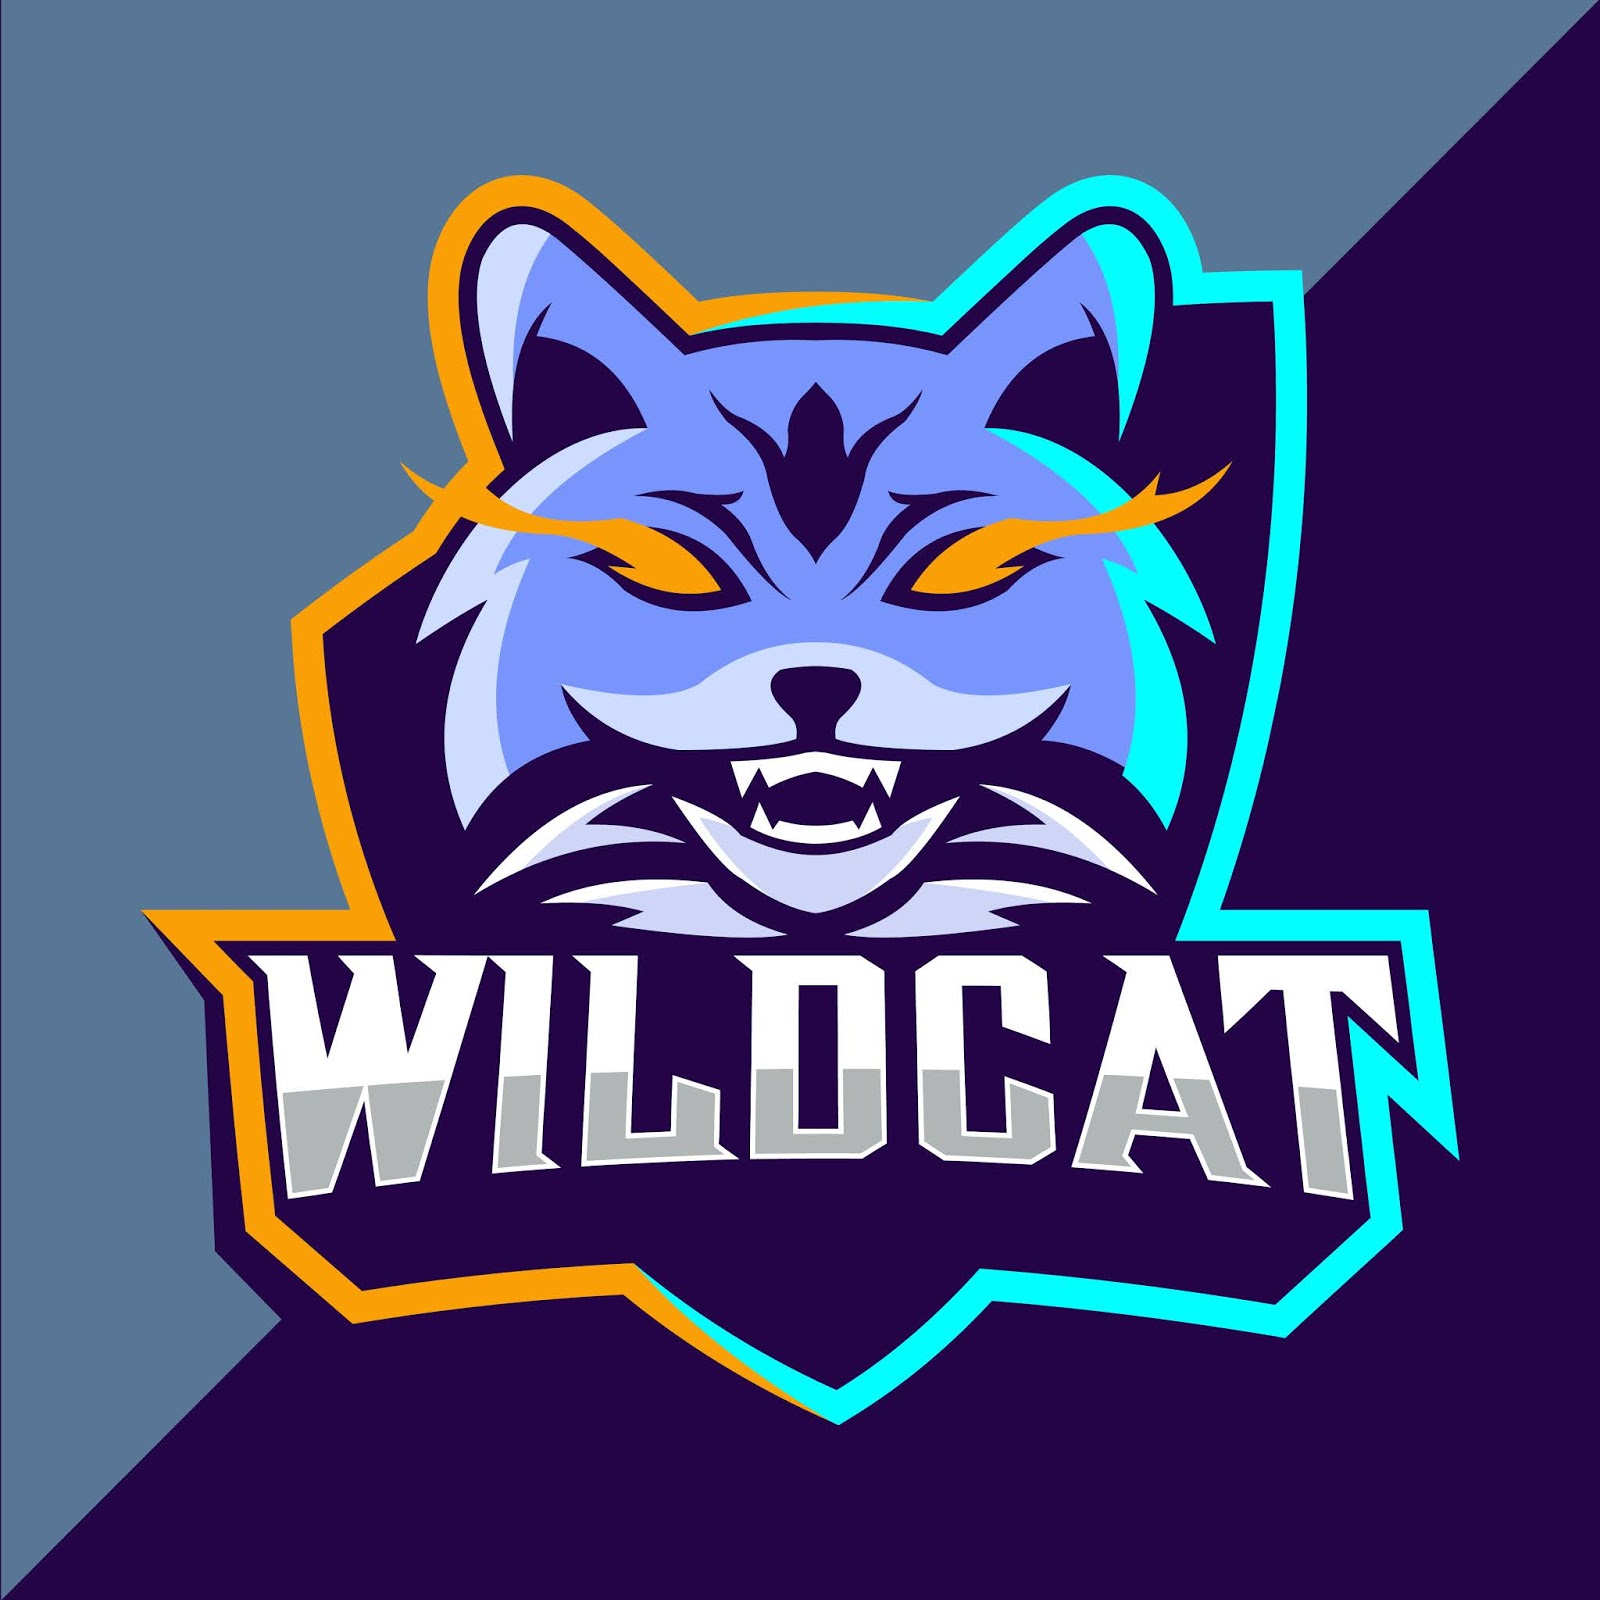 Wildcats Mascot Esport Logo Free Download Vector CDR, AI, EPS and PNG Formats